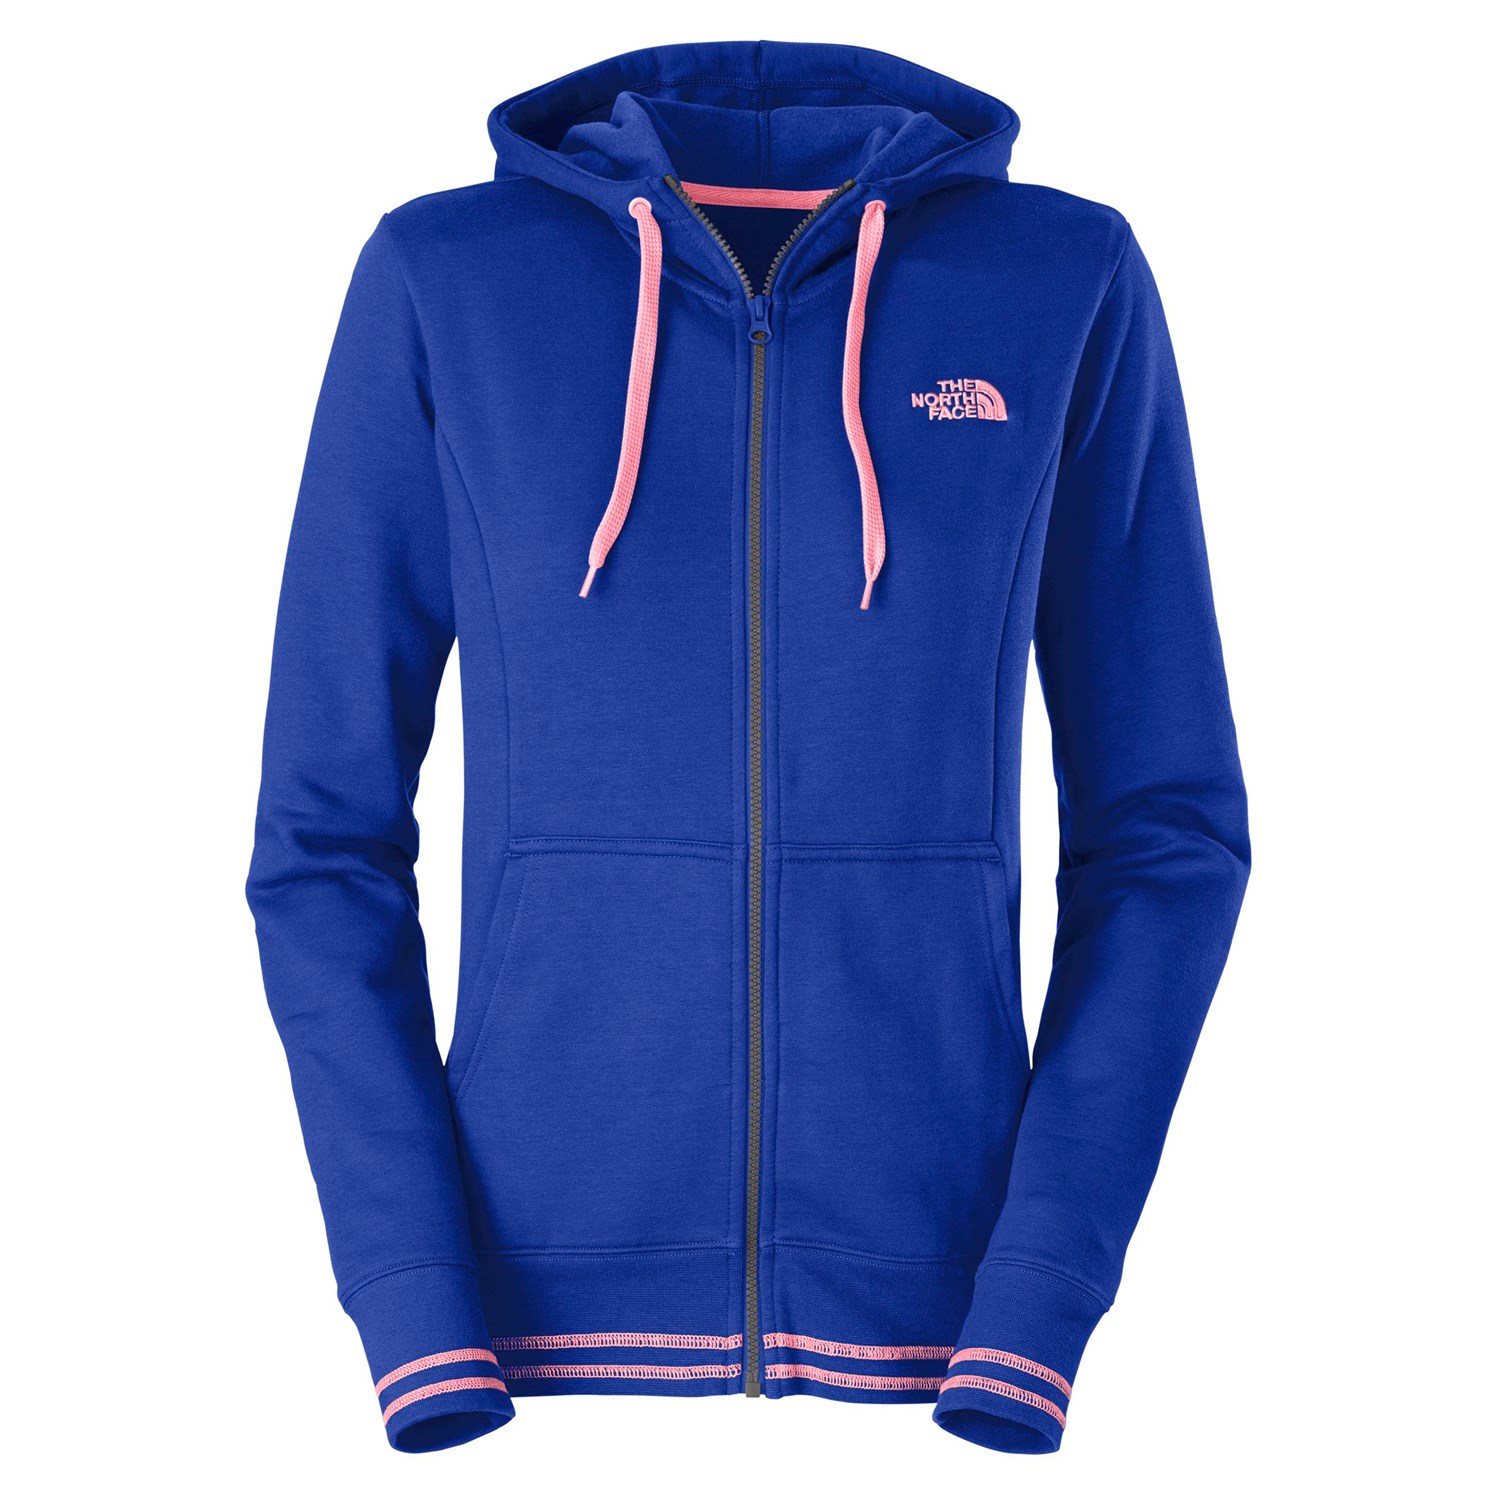 Womens north face hoodies